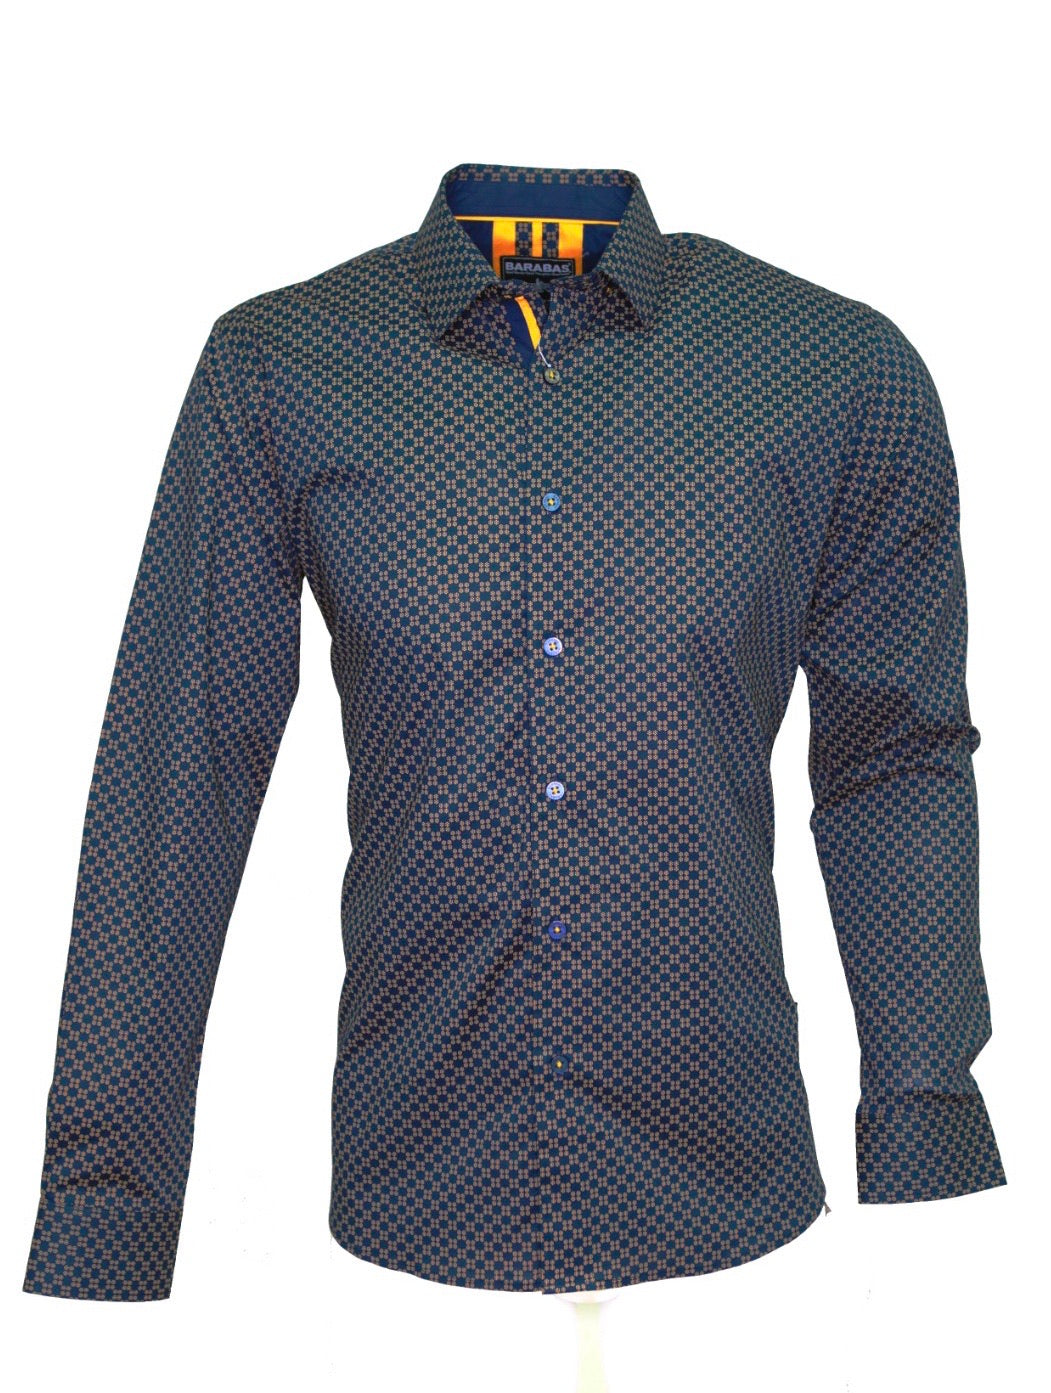 Mens Barabas blue/copper check 40030